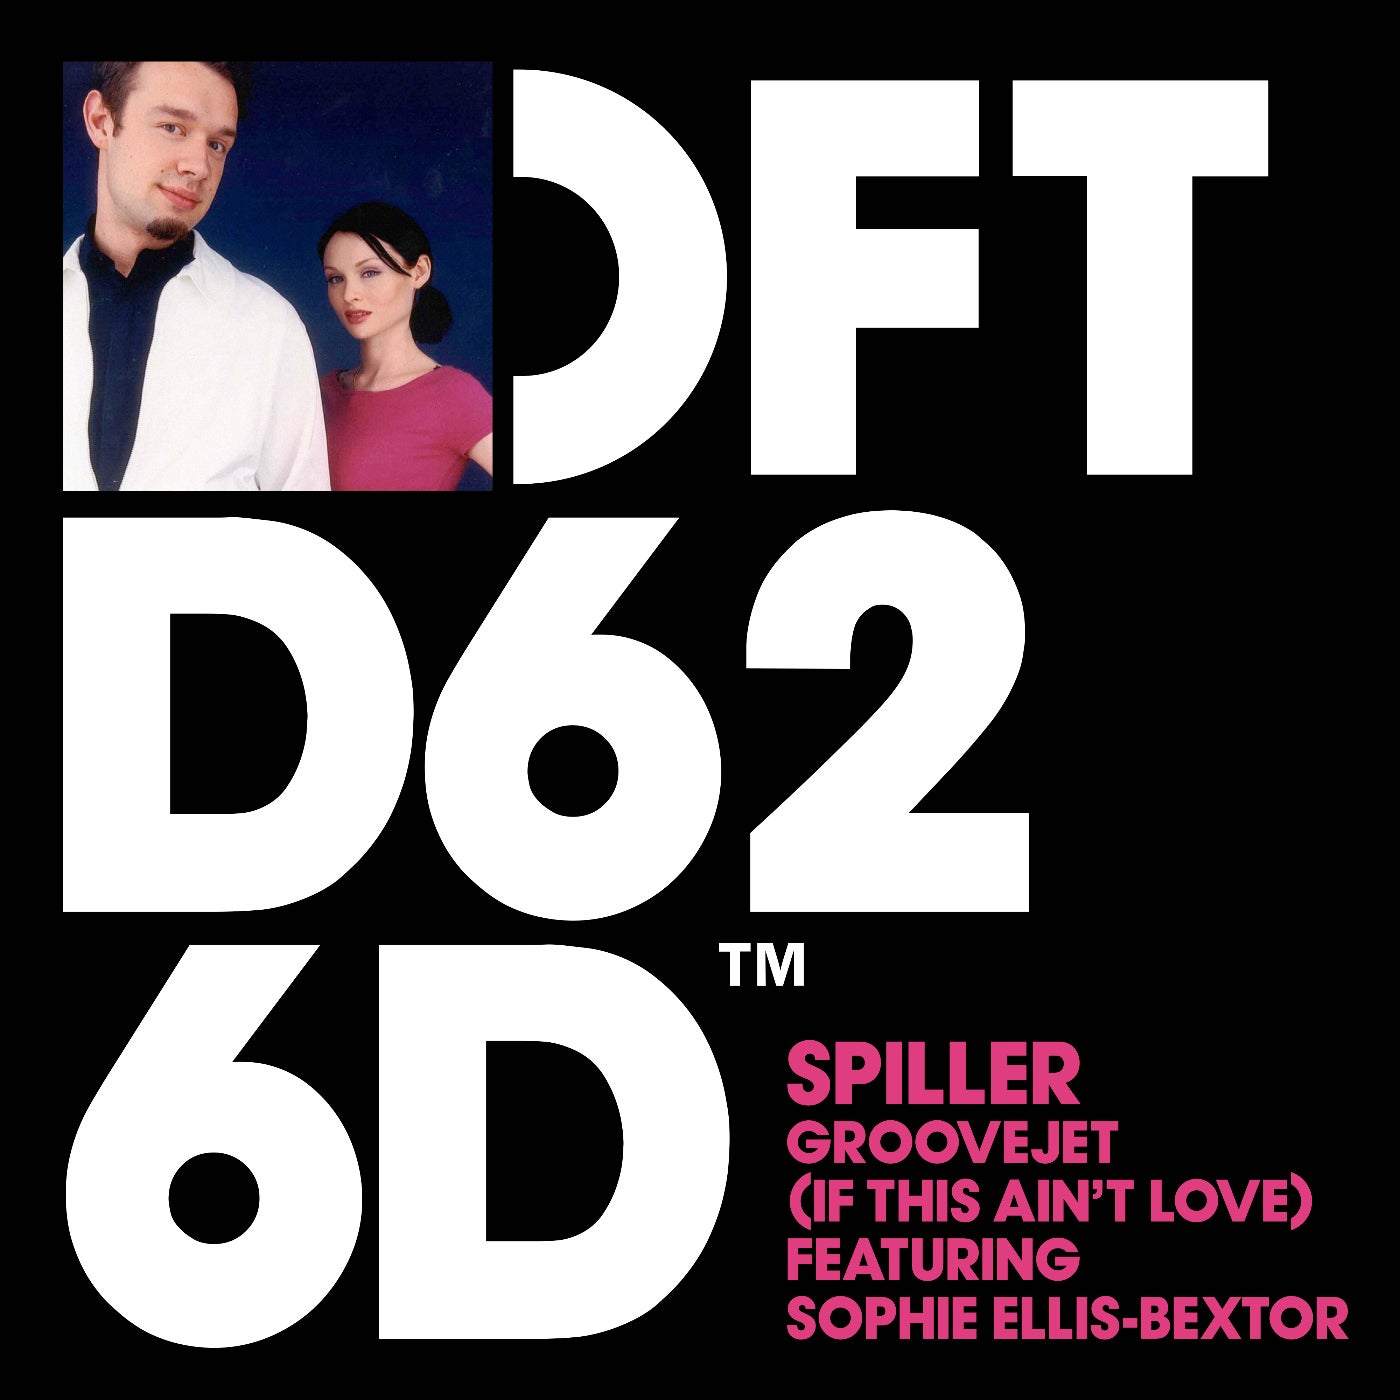 Groovejet (If This Ain't Love) feat. Sophie Ellis-Bextor (Extended Vocal Mix)